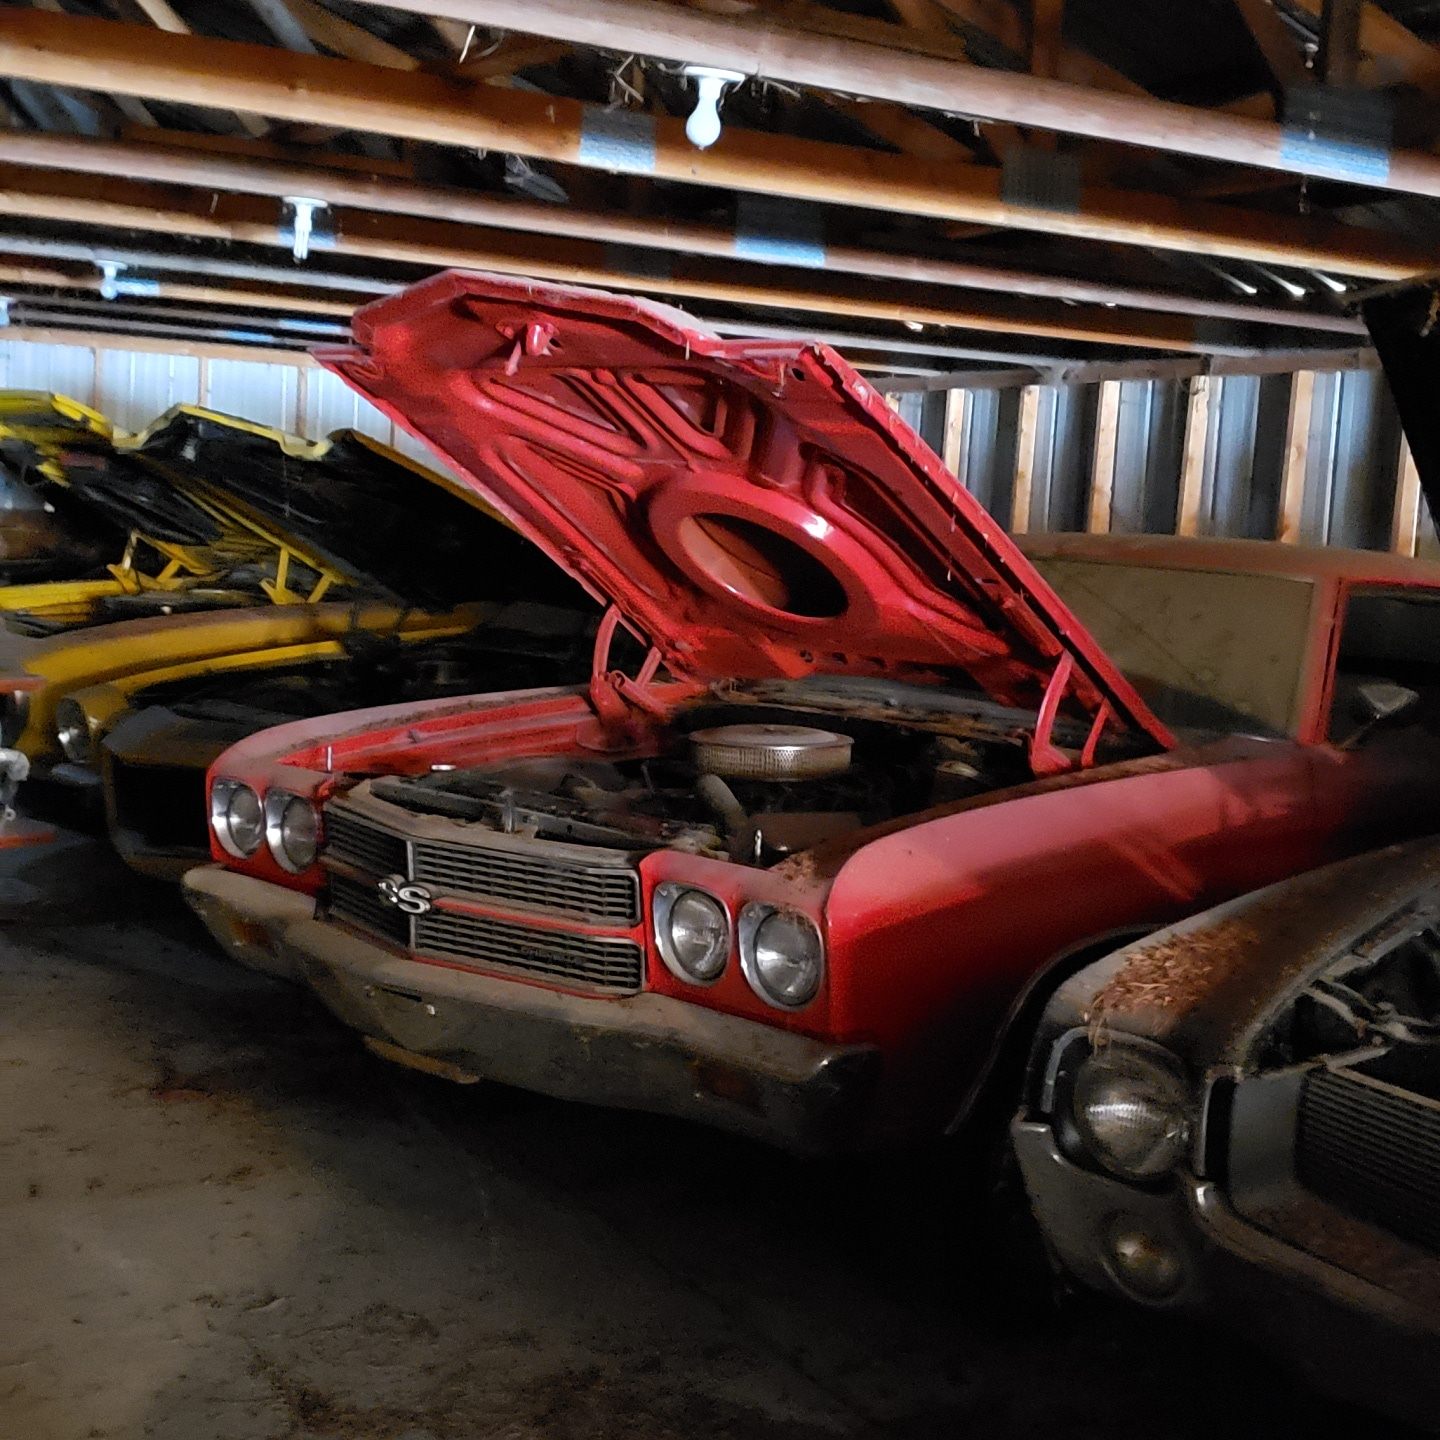 Online Public Car Auction >> Iowa Muscle Car Hoard! The Coyote Johnson Collection Auction Auction - September 14, 2019 ...